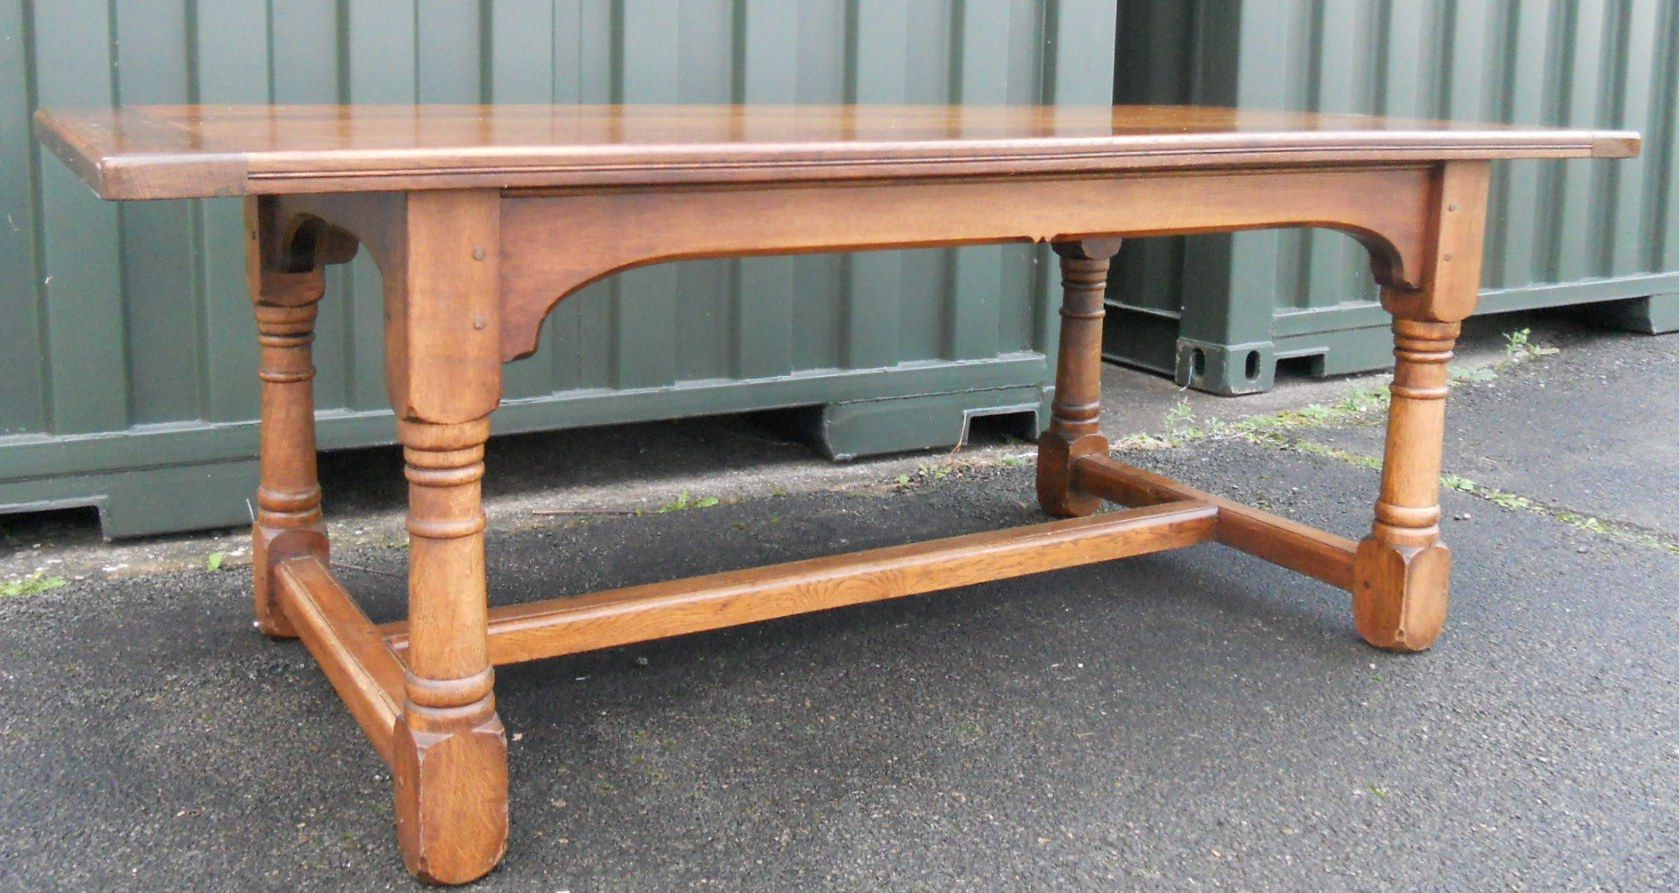 Craftsman Made Oak Refectory Dining Table To Seat 8 10 People. Full resolution‎  image, nominally Width 1679 Height 893 pixels, image with #975C34.